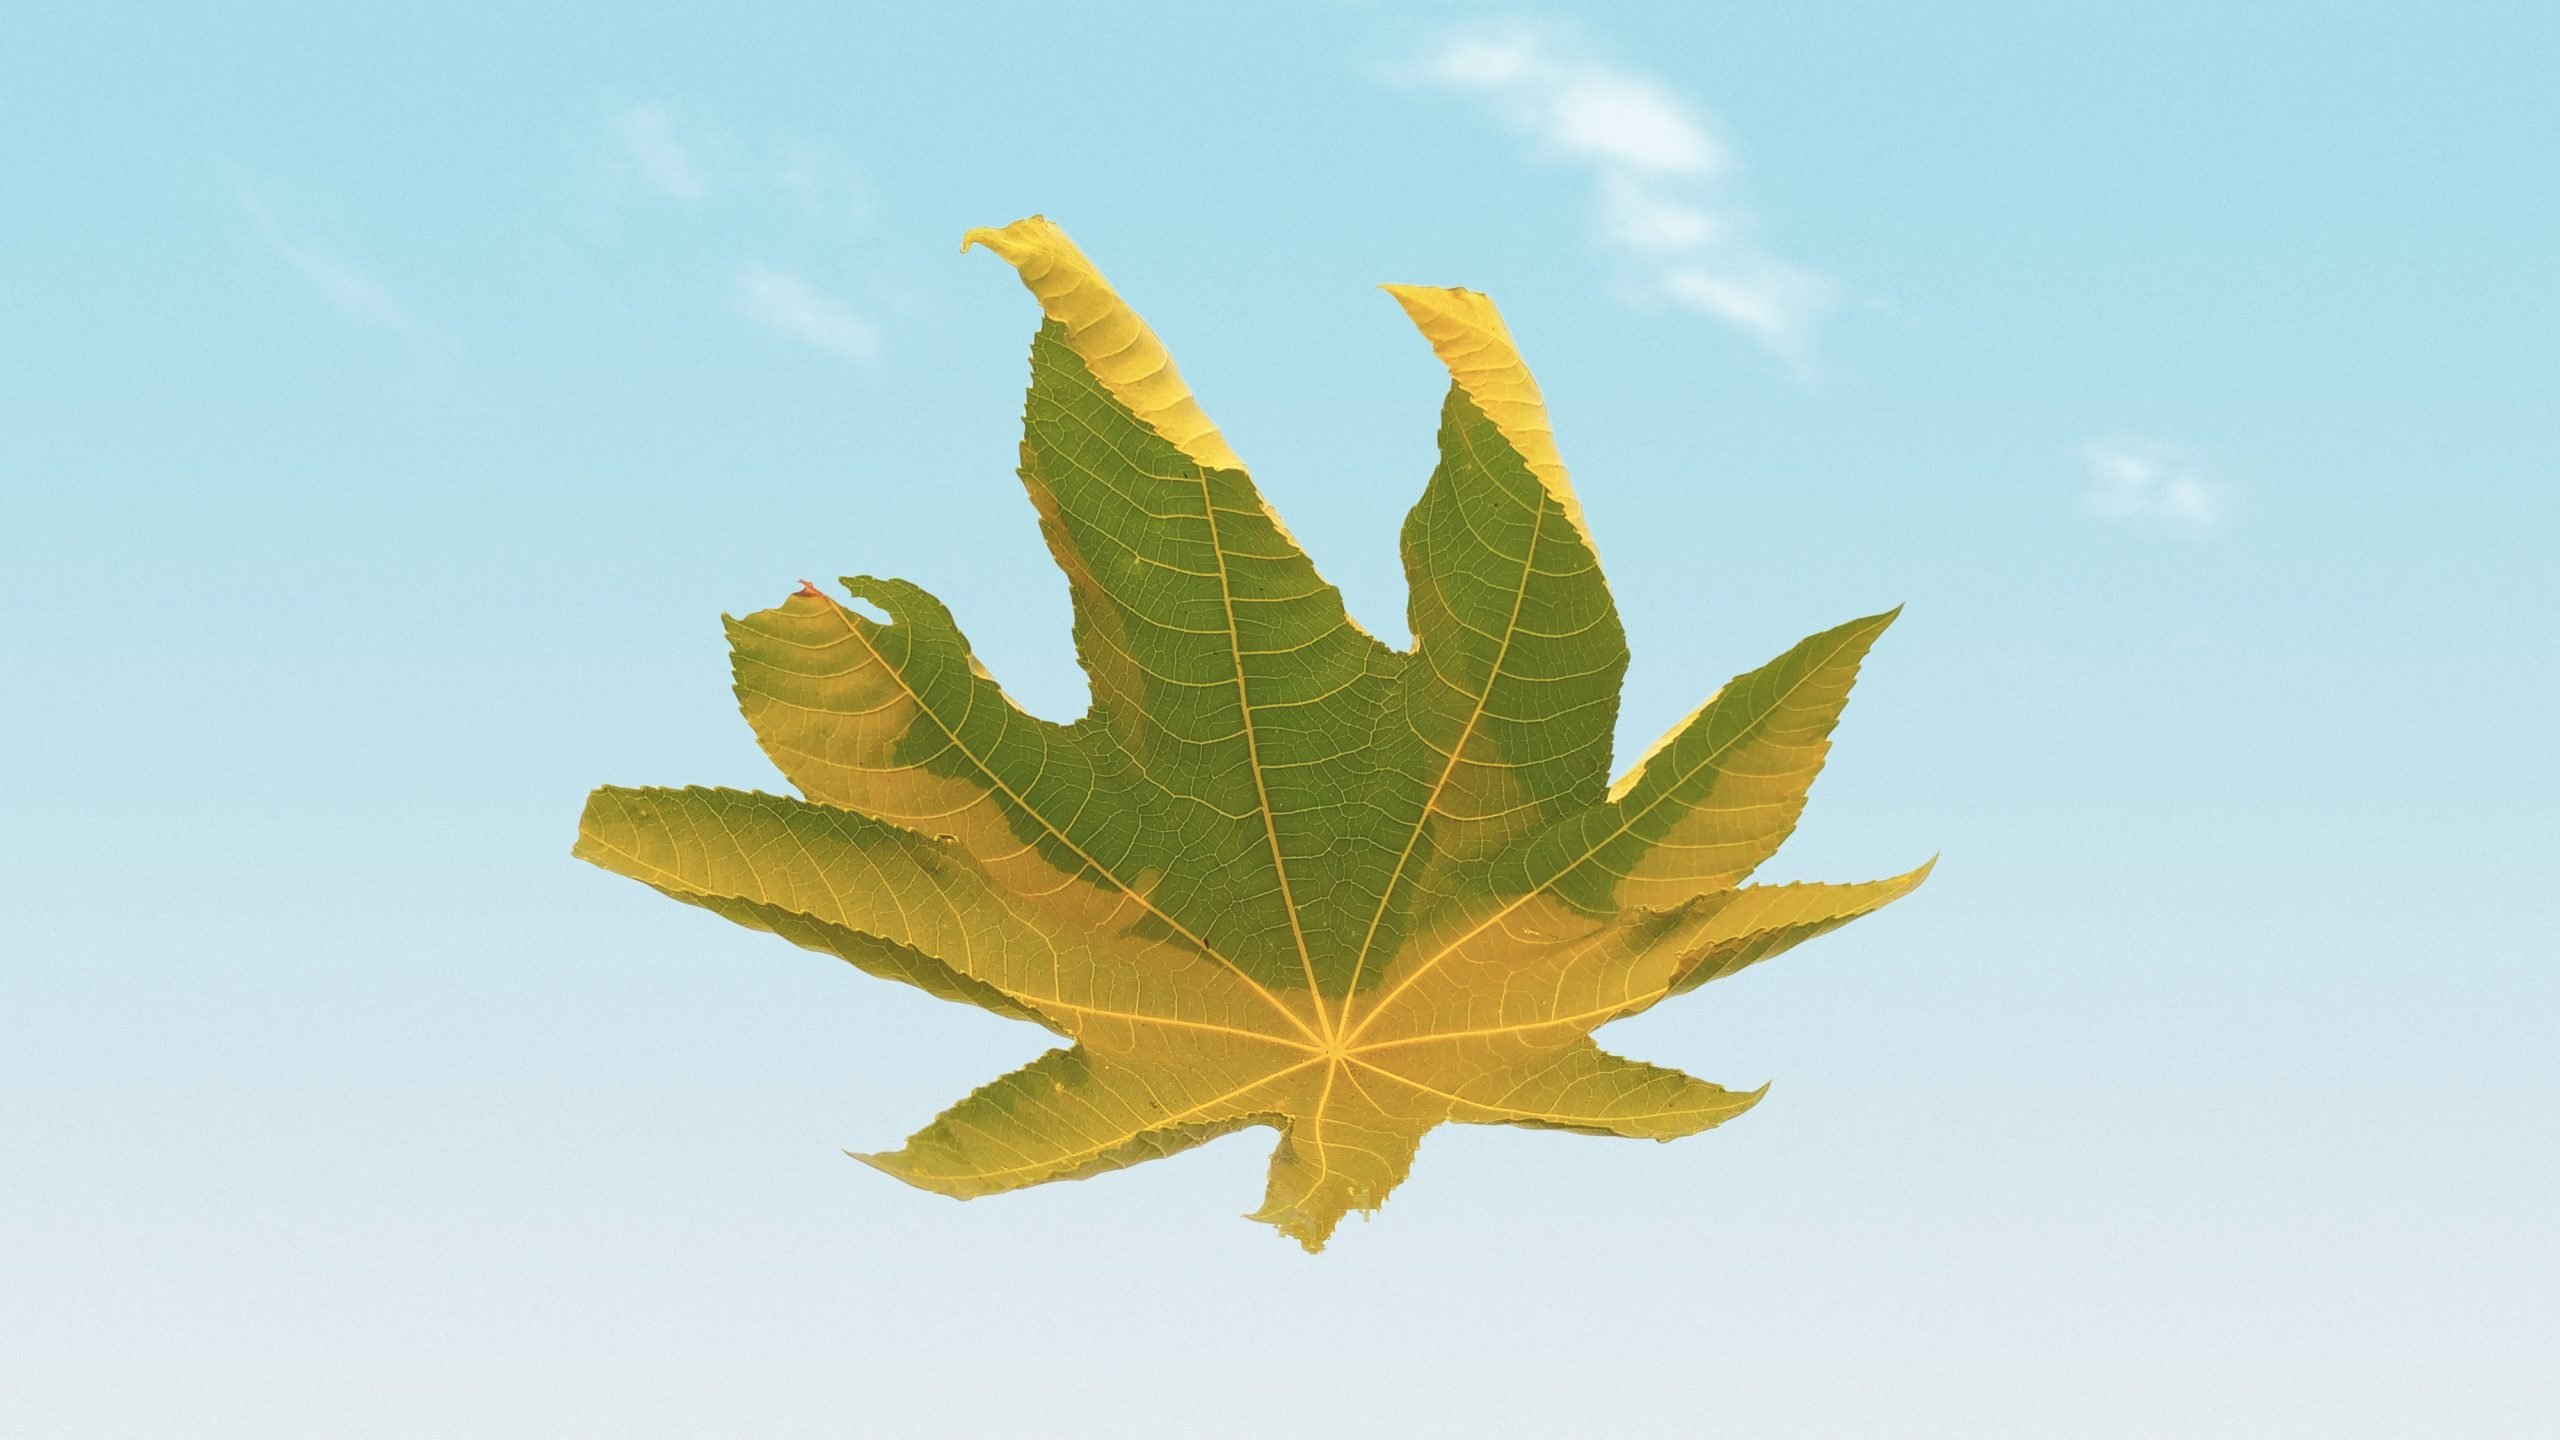 Plant leaf in the air